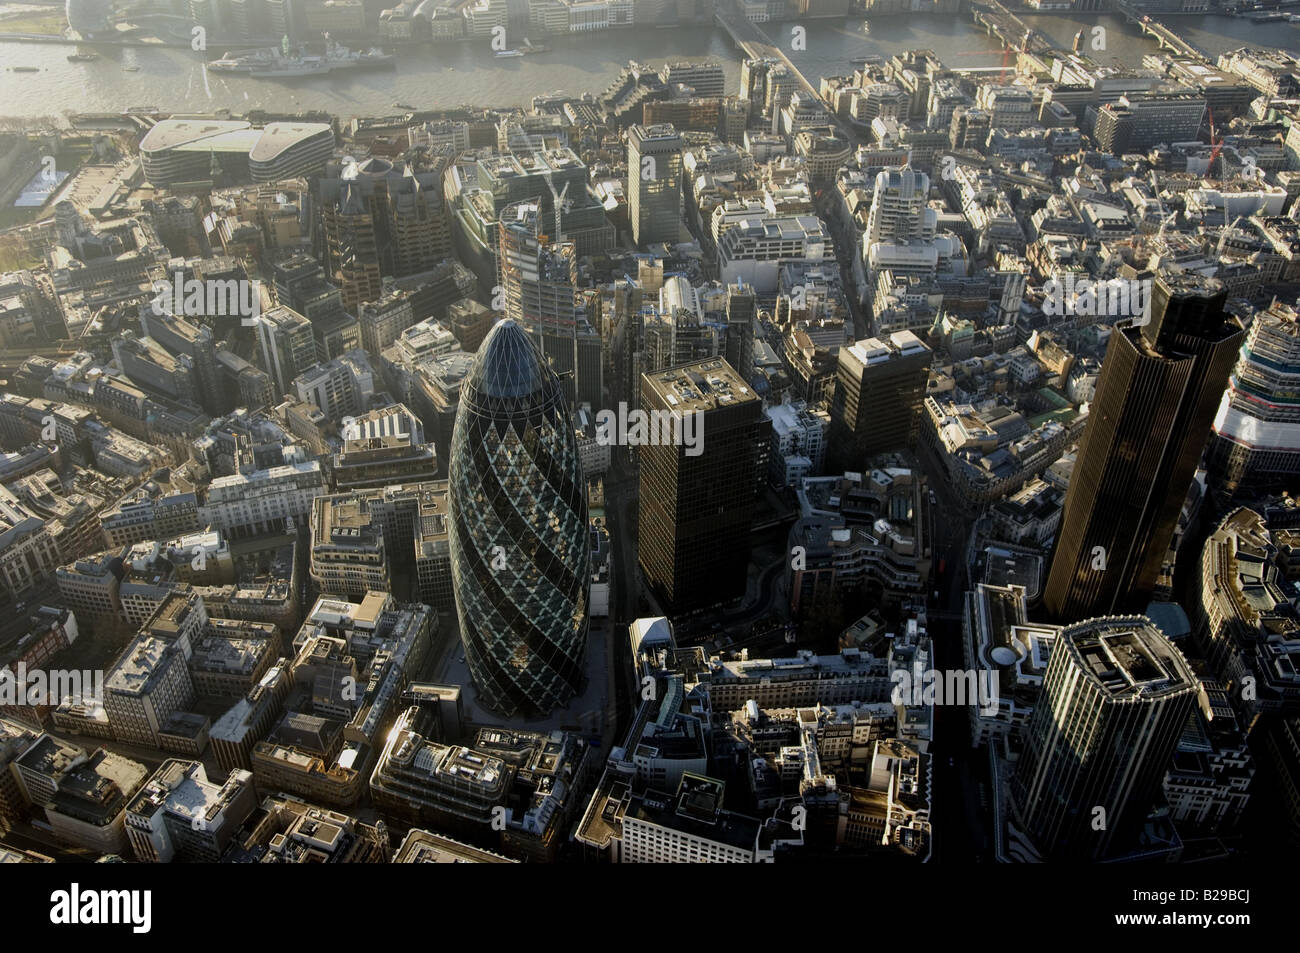 The City of London Date 12 03 2008 Ref ZB648 111149 0055 COMPULSORY CREDIT World Pictures Photoshot - Stock Image